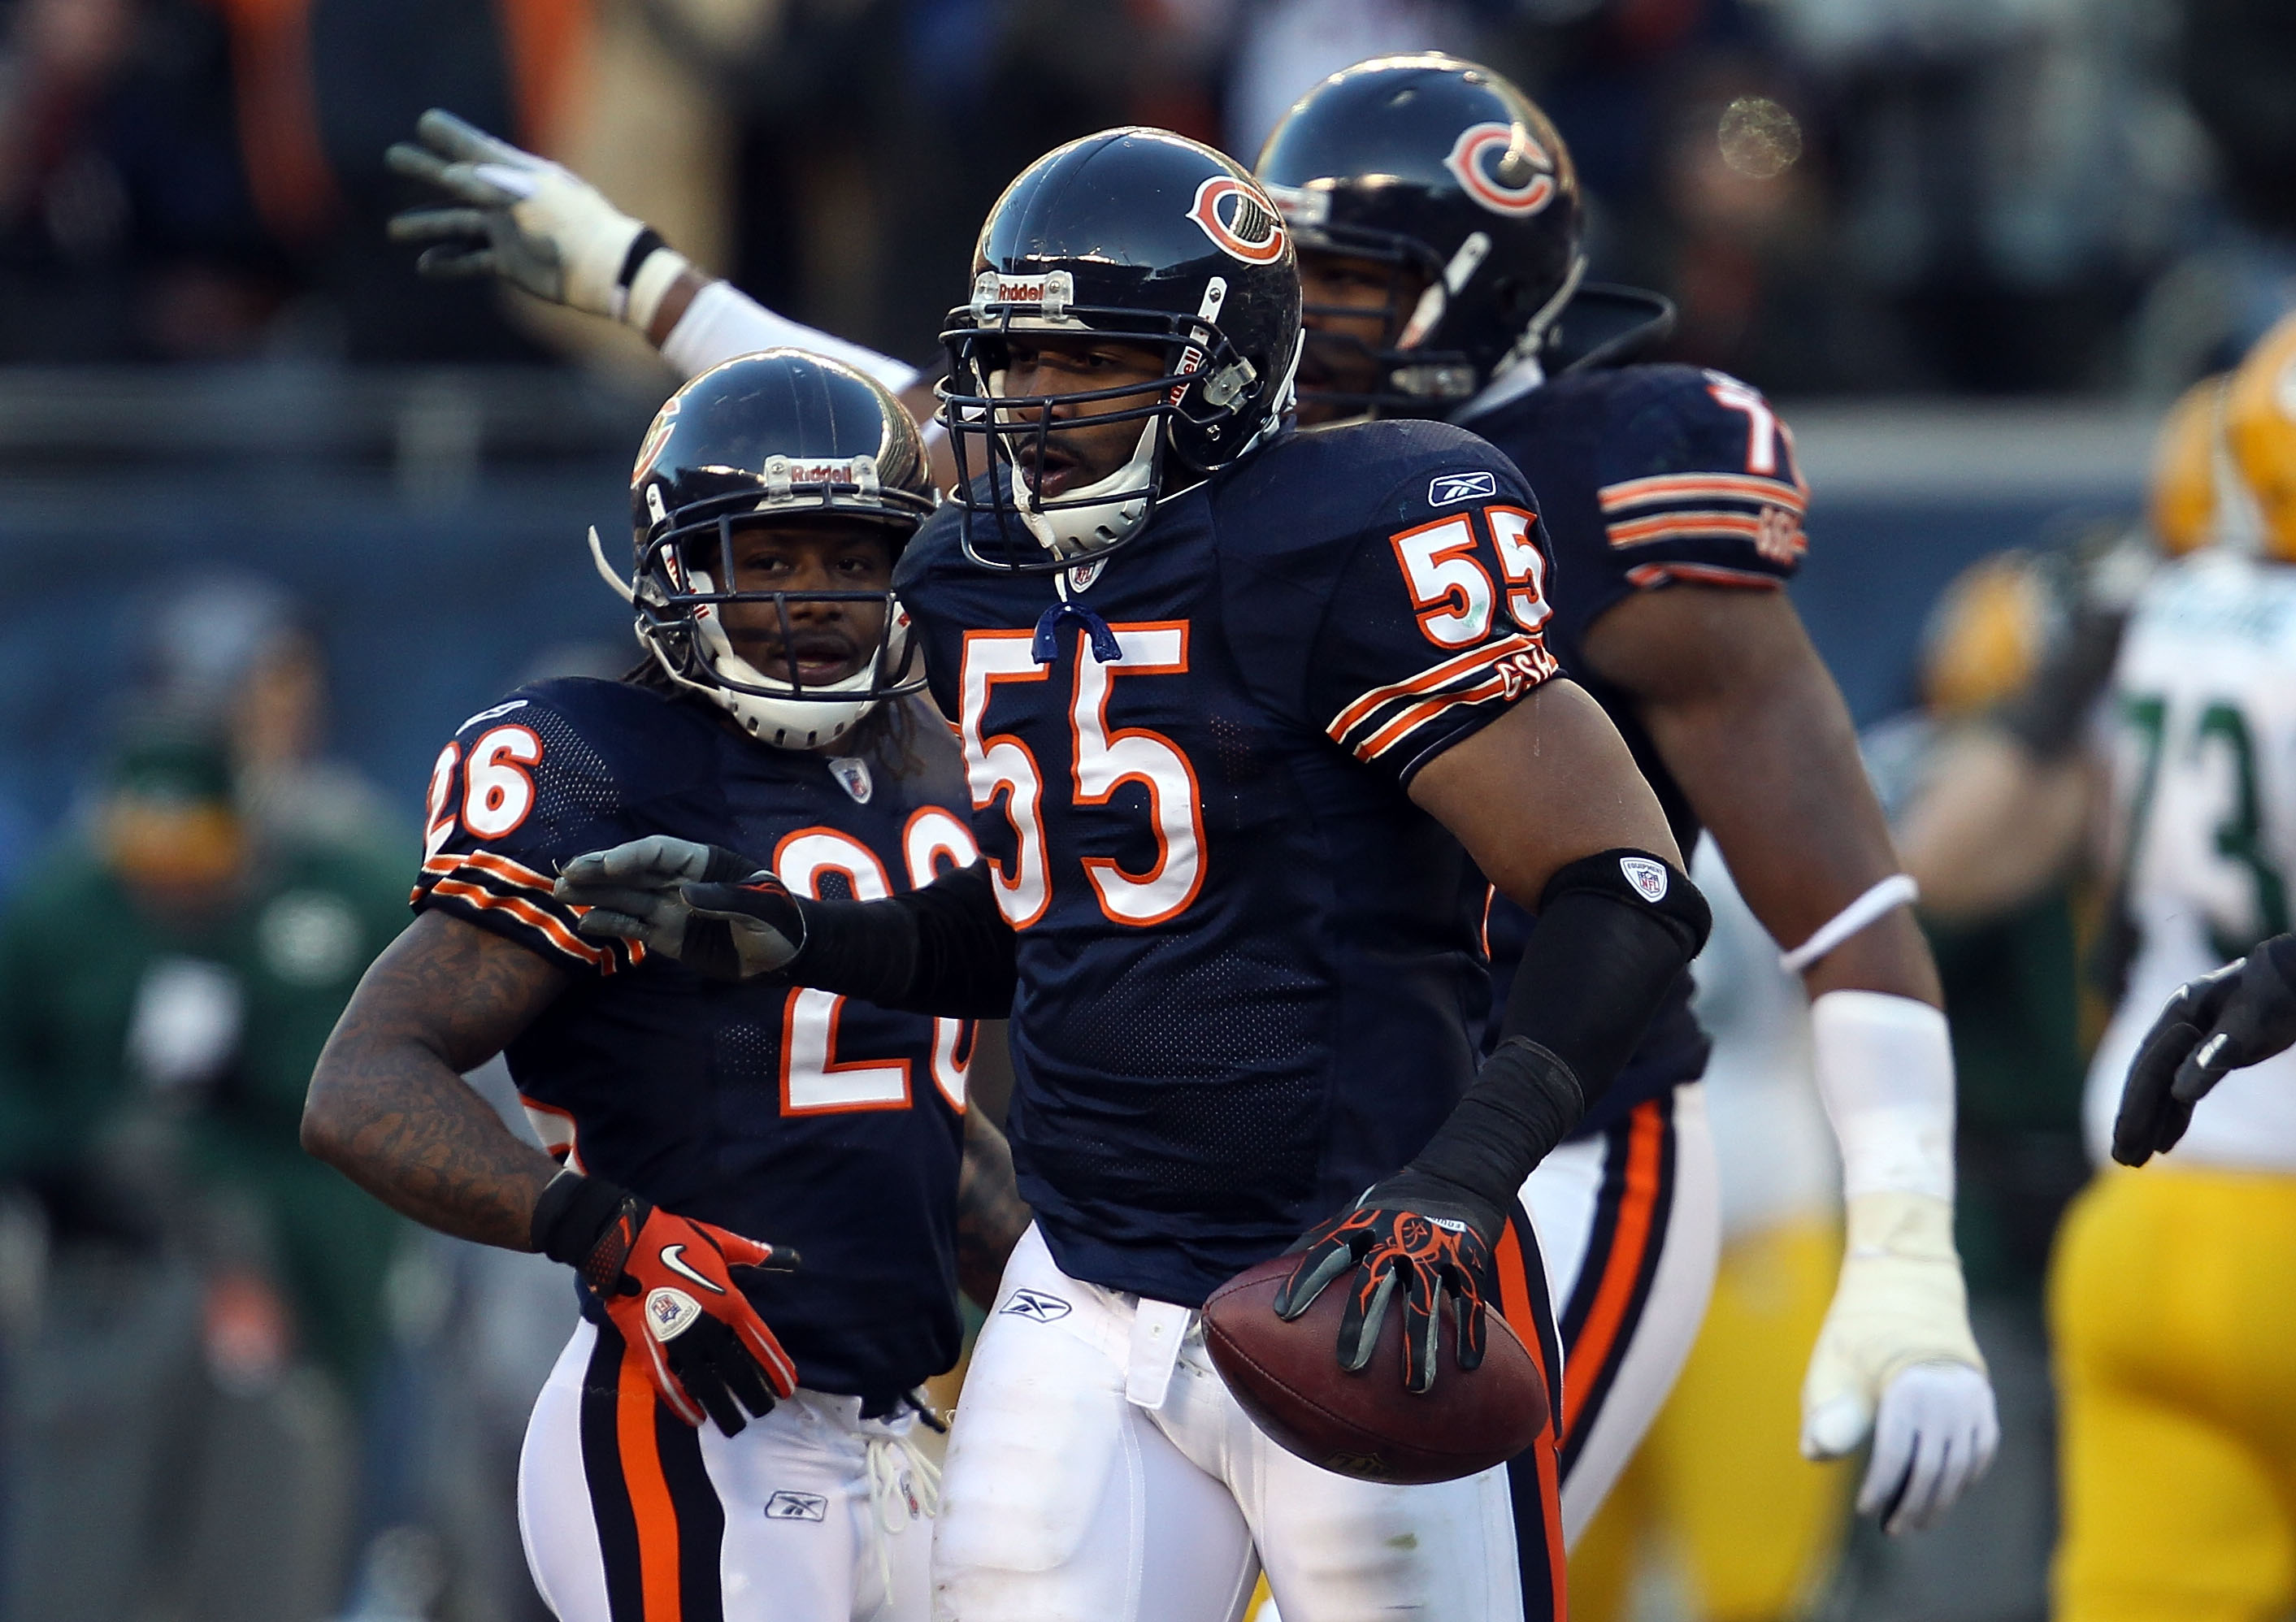 CHICAGO, IL - JANUARY 23:  Linebacker Lance Briggs #55 of the Chicago Bears reacts after an interception late in the second quarter against the Green Bay Packers in the NFC Championship Game at Soldier Field on January 23, 2011 in Chicago, Illinois.  (Pho